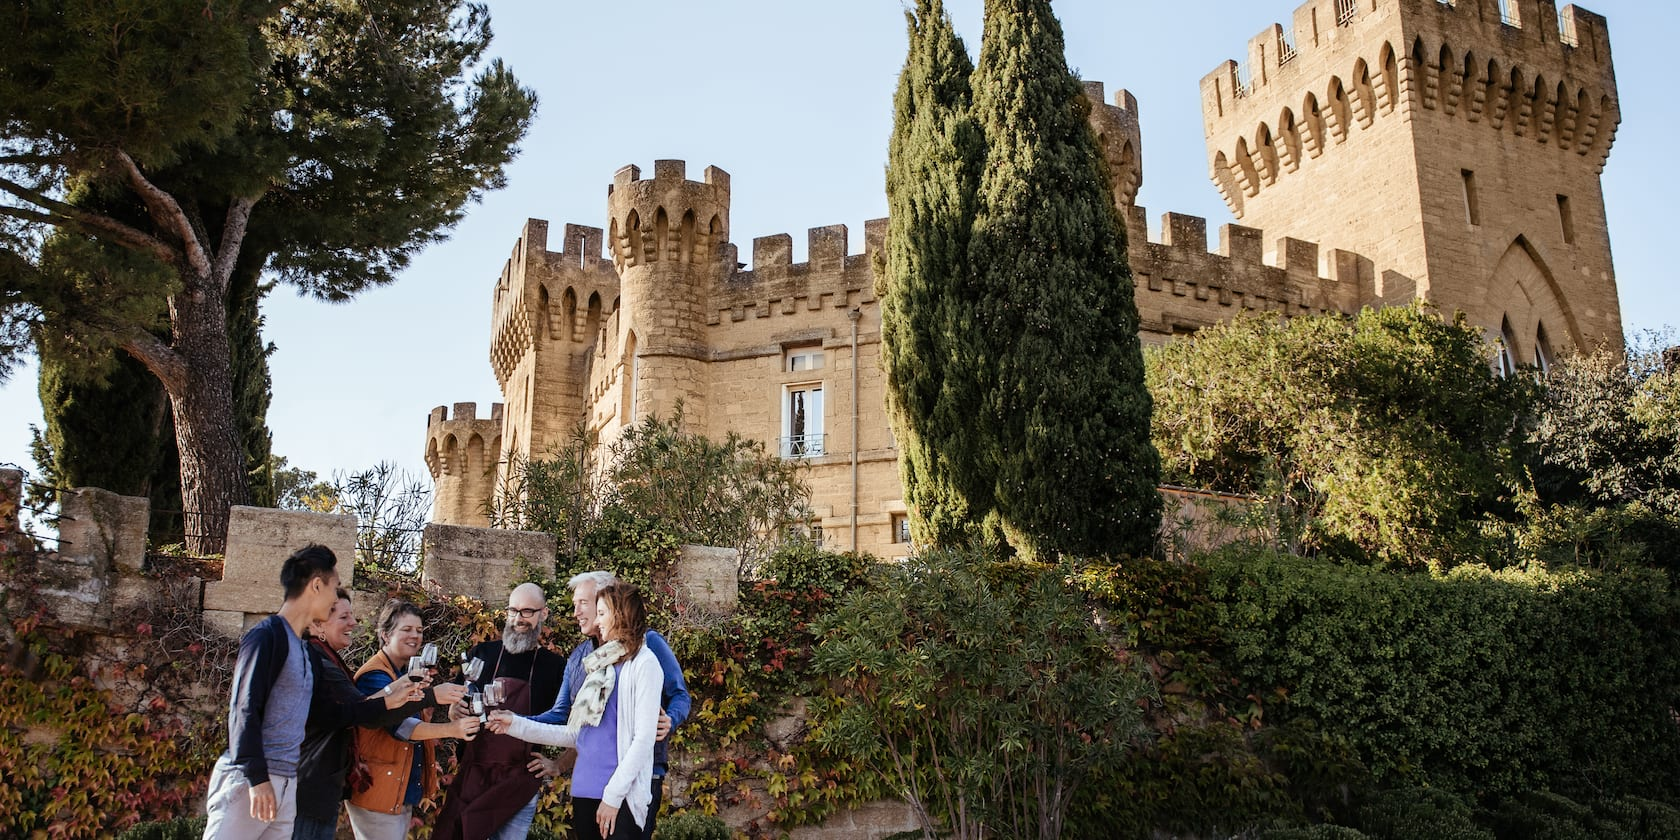 A group of people make a toast with wine glasses in front of Château des Fines Roches in Avignon, France